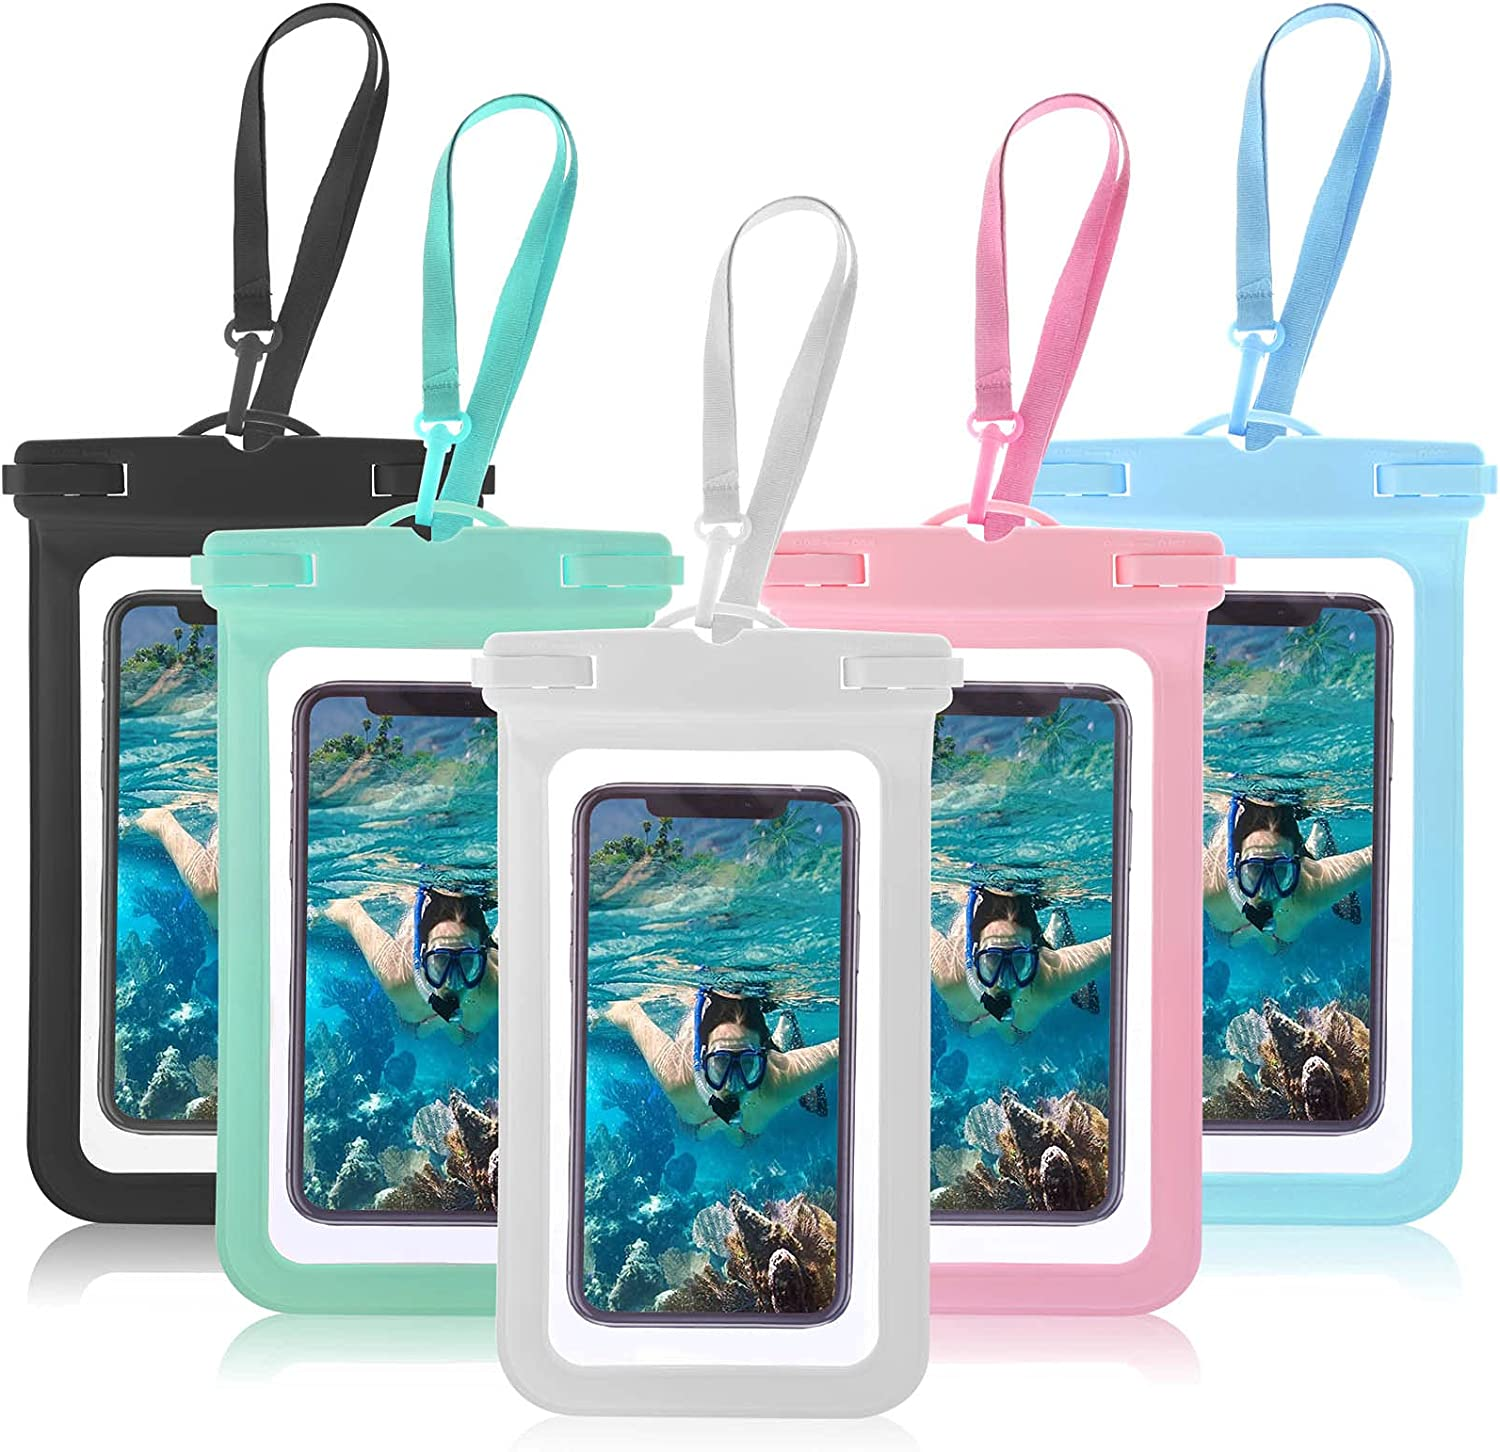 5 Pack Waterproof Case Universal Waterproof Pouch Cellphone Dry Bag Underwater Case Compatible for 12/12 Pro/11/11 Pro/SE/Xs Max/XR/8P/7 Galaxy up to 7